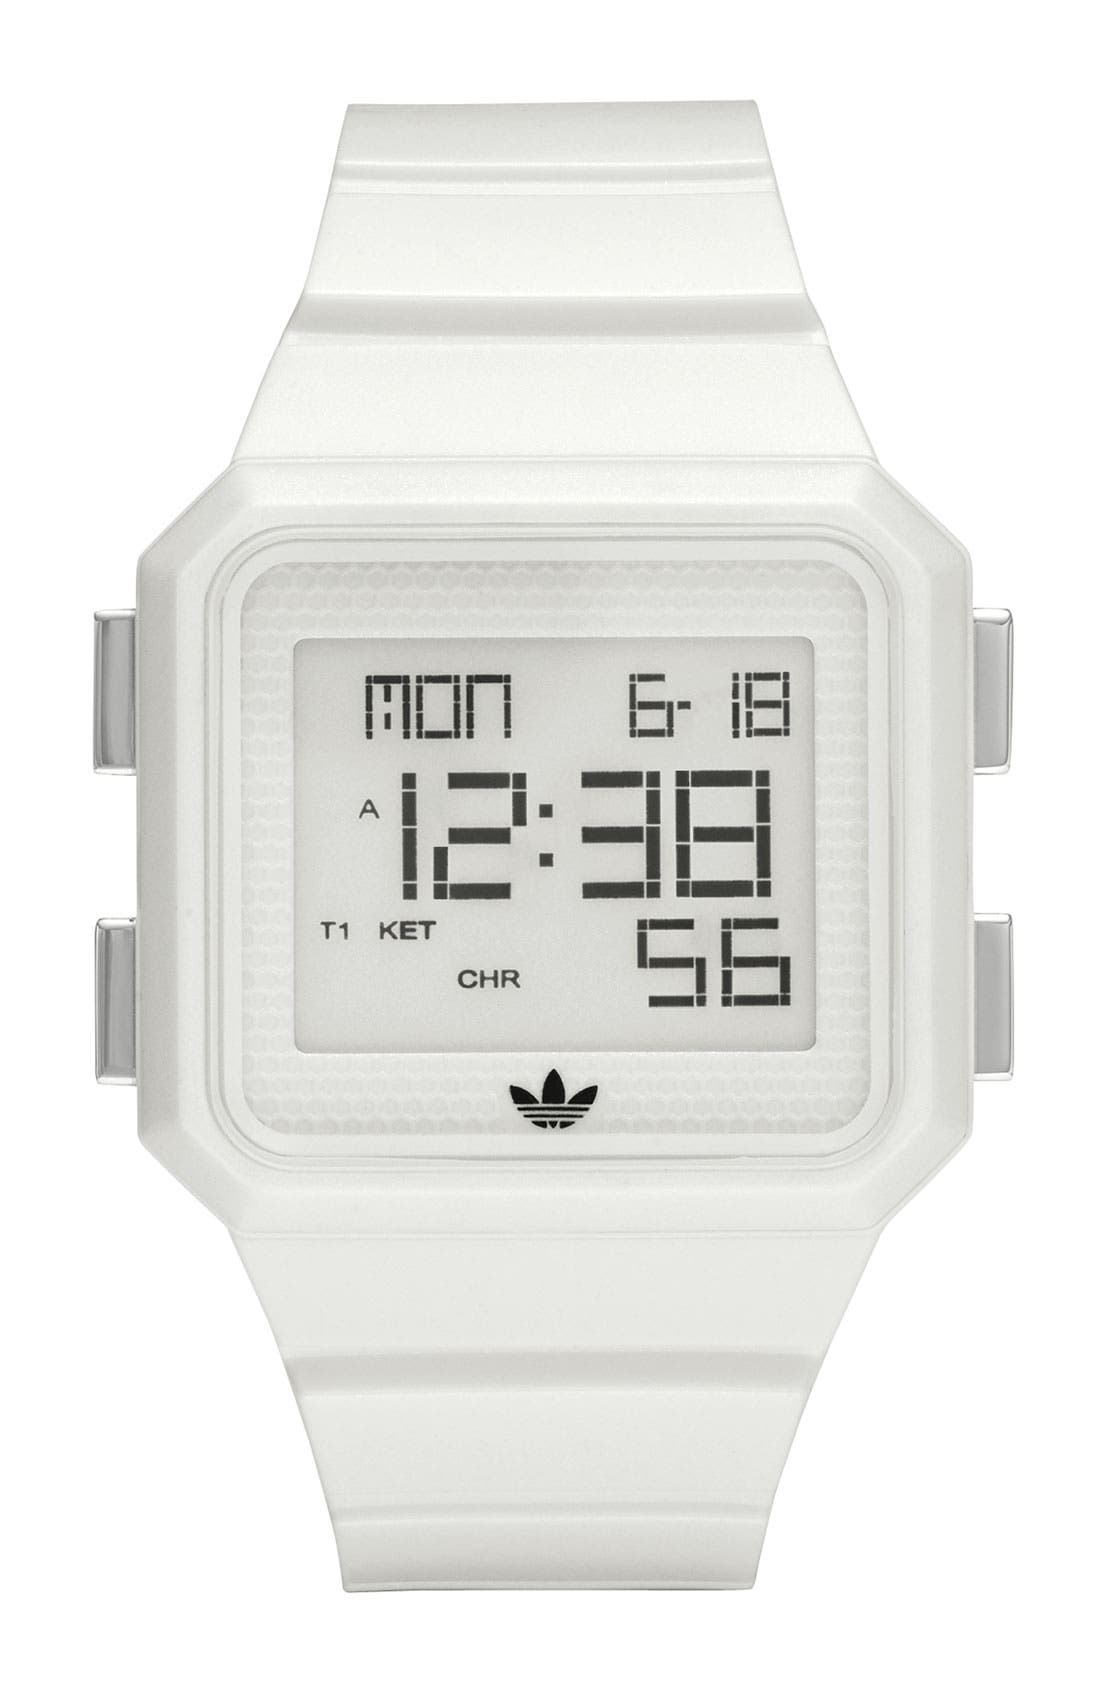 Main Image - adidas Originals 'Peachtree' Digital Watch, 46mm x 39mm